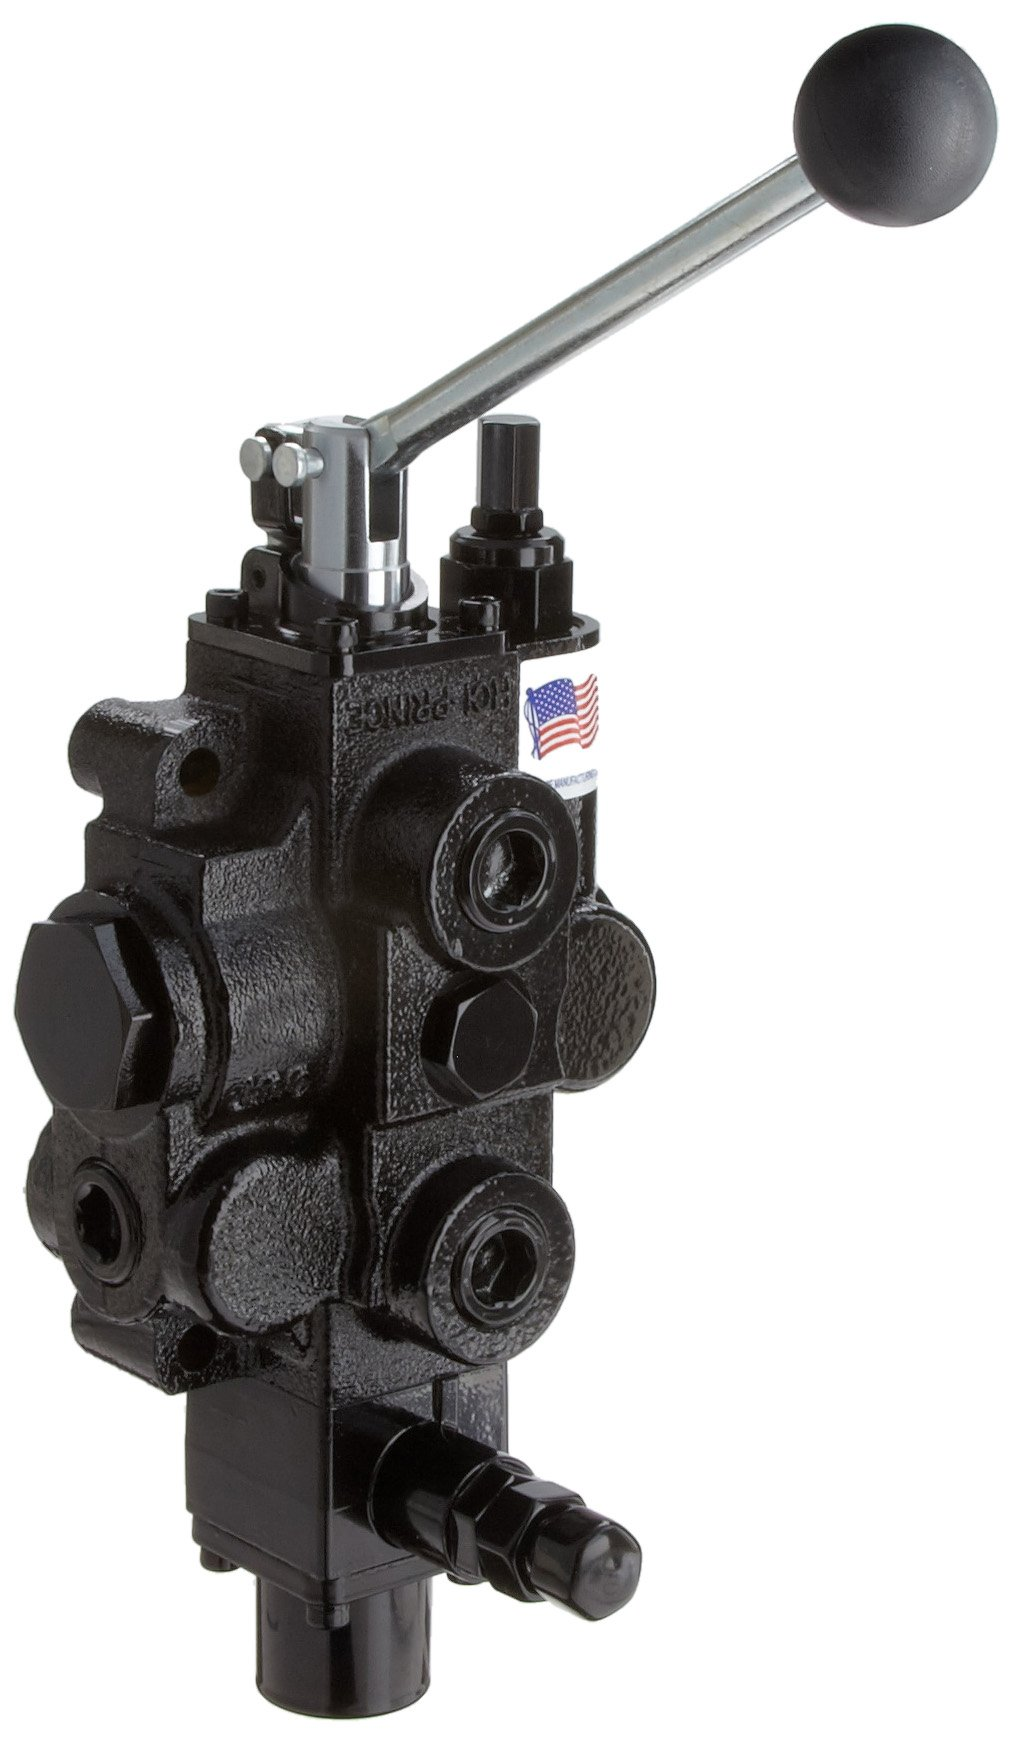 Prince RD513CE5A4B1 Directional Control Valve, Monoblock, Cast Iron, 1 Spool, 4 Ways, 3 Positions, Tandem, Pressure Release Detent, Spool ''Out'' Only, Spring Center, Lever Handle, 3000 psi, 30 gpm, In/Out: 3/4'' NPT Female, Work 3/4'' NPT Female